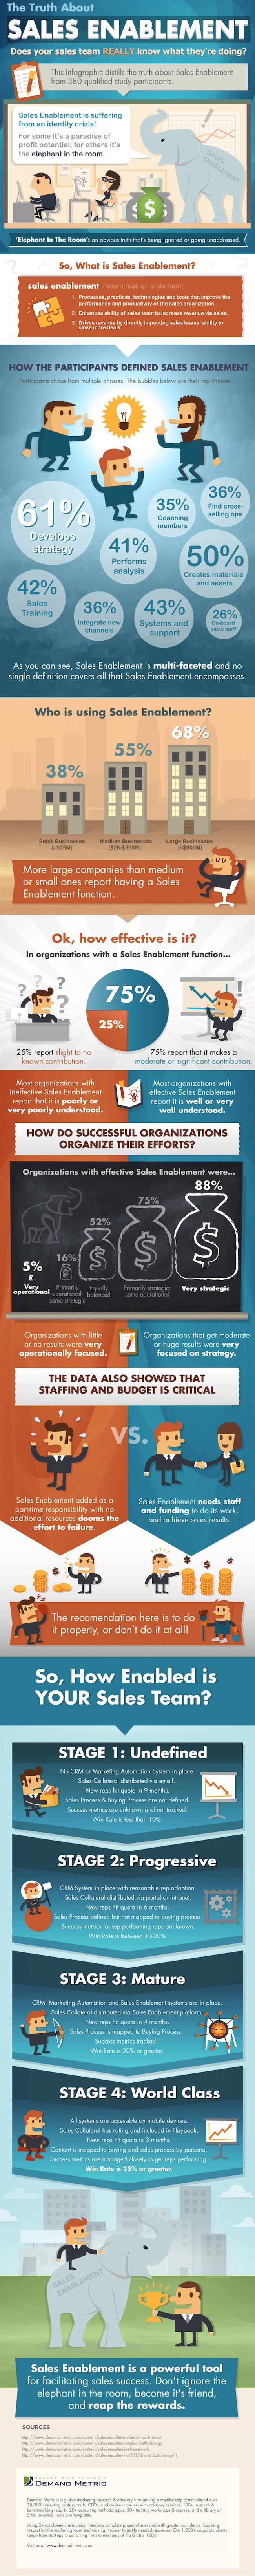 What Is Sales Enablement? [Infographic]